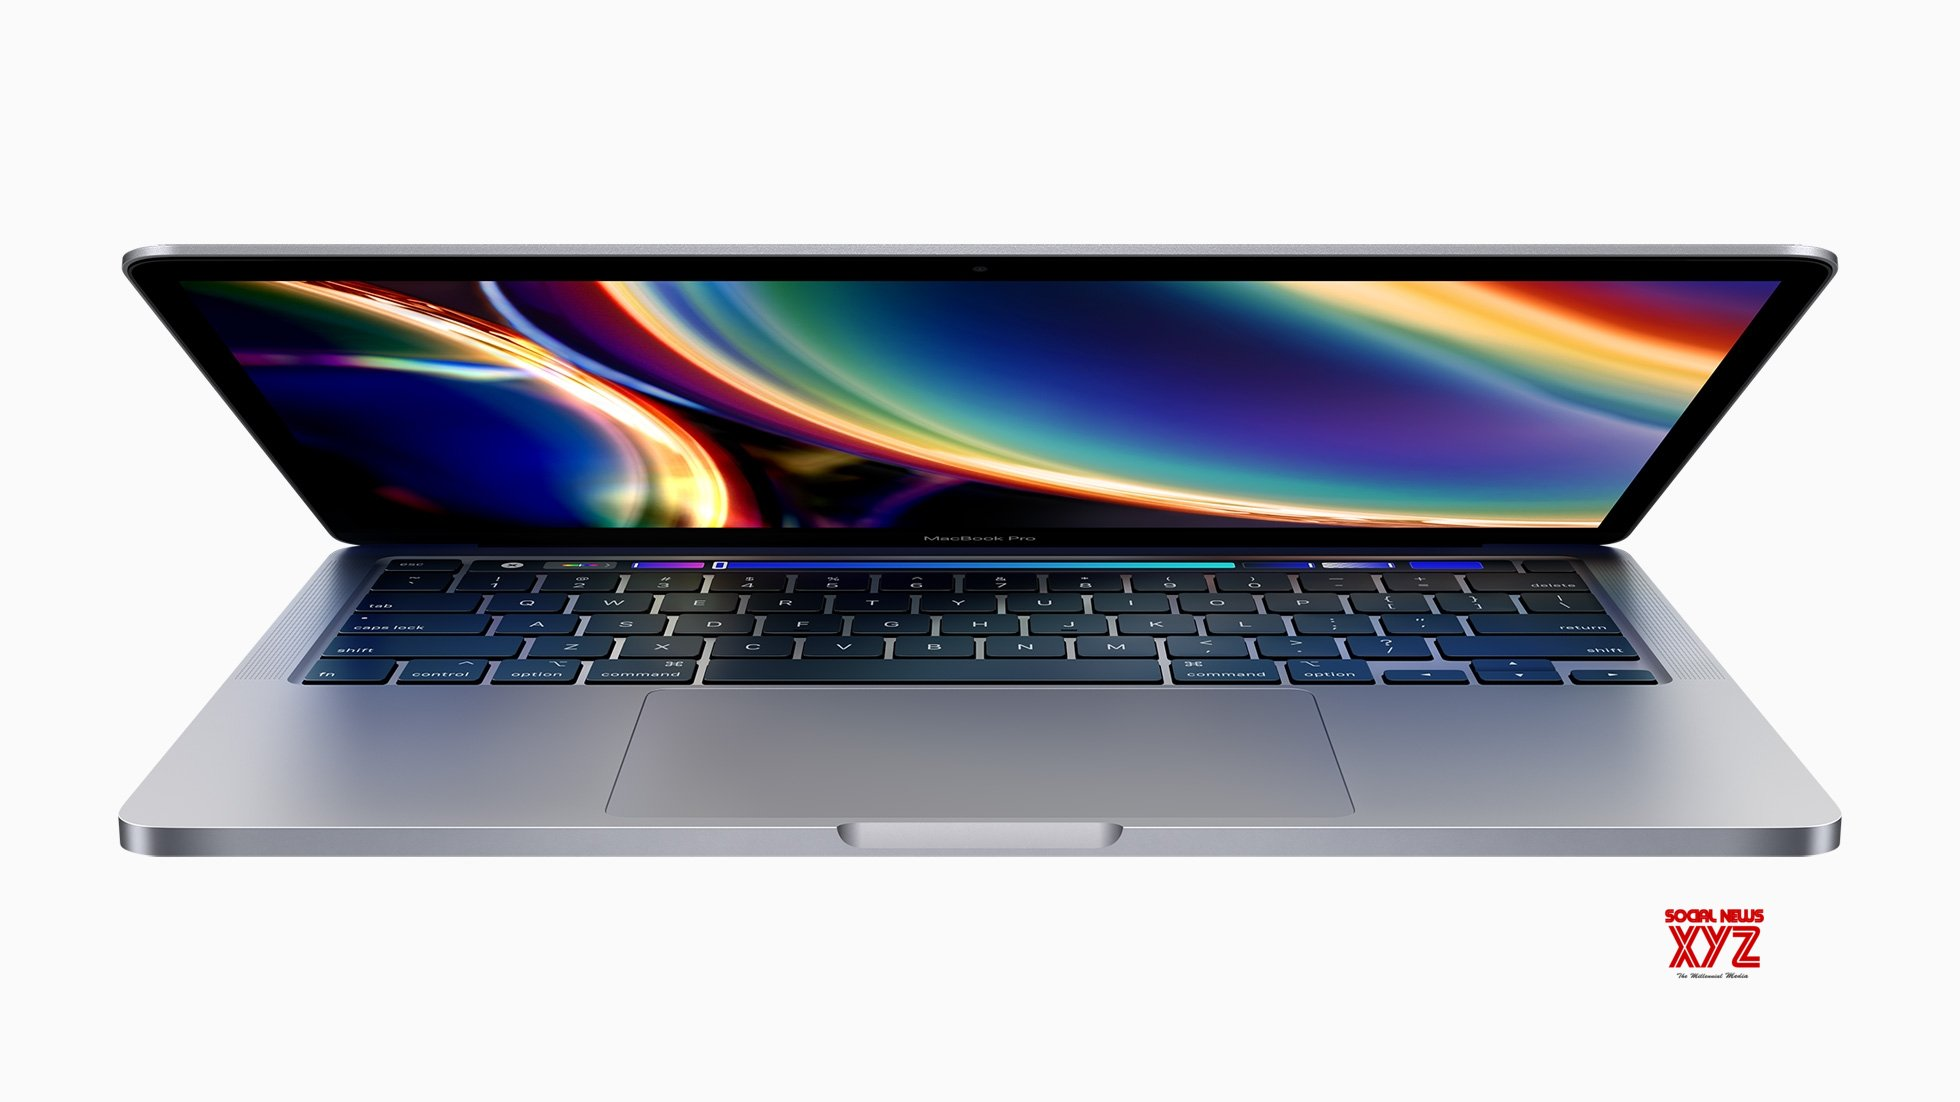 Intel ad uses MacBook to promote its chips